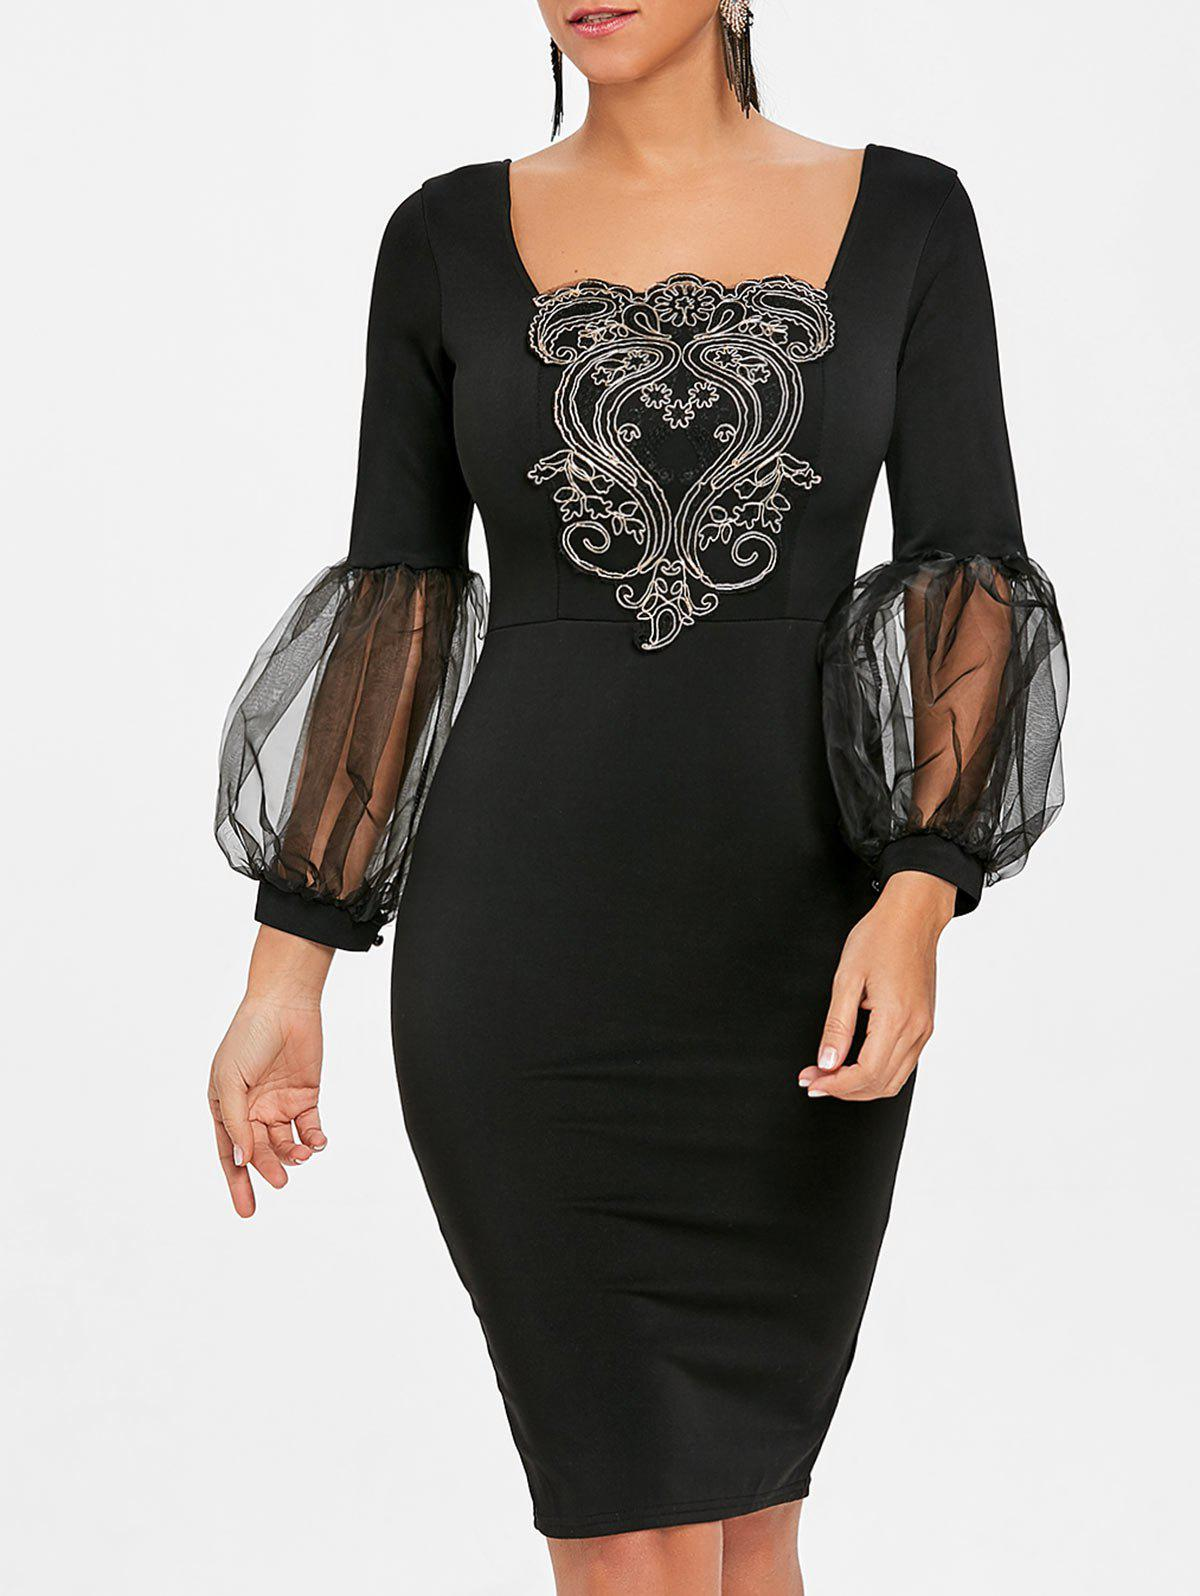 Applique Lantern Sleeve Bodycon Dress - BLACK L